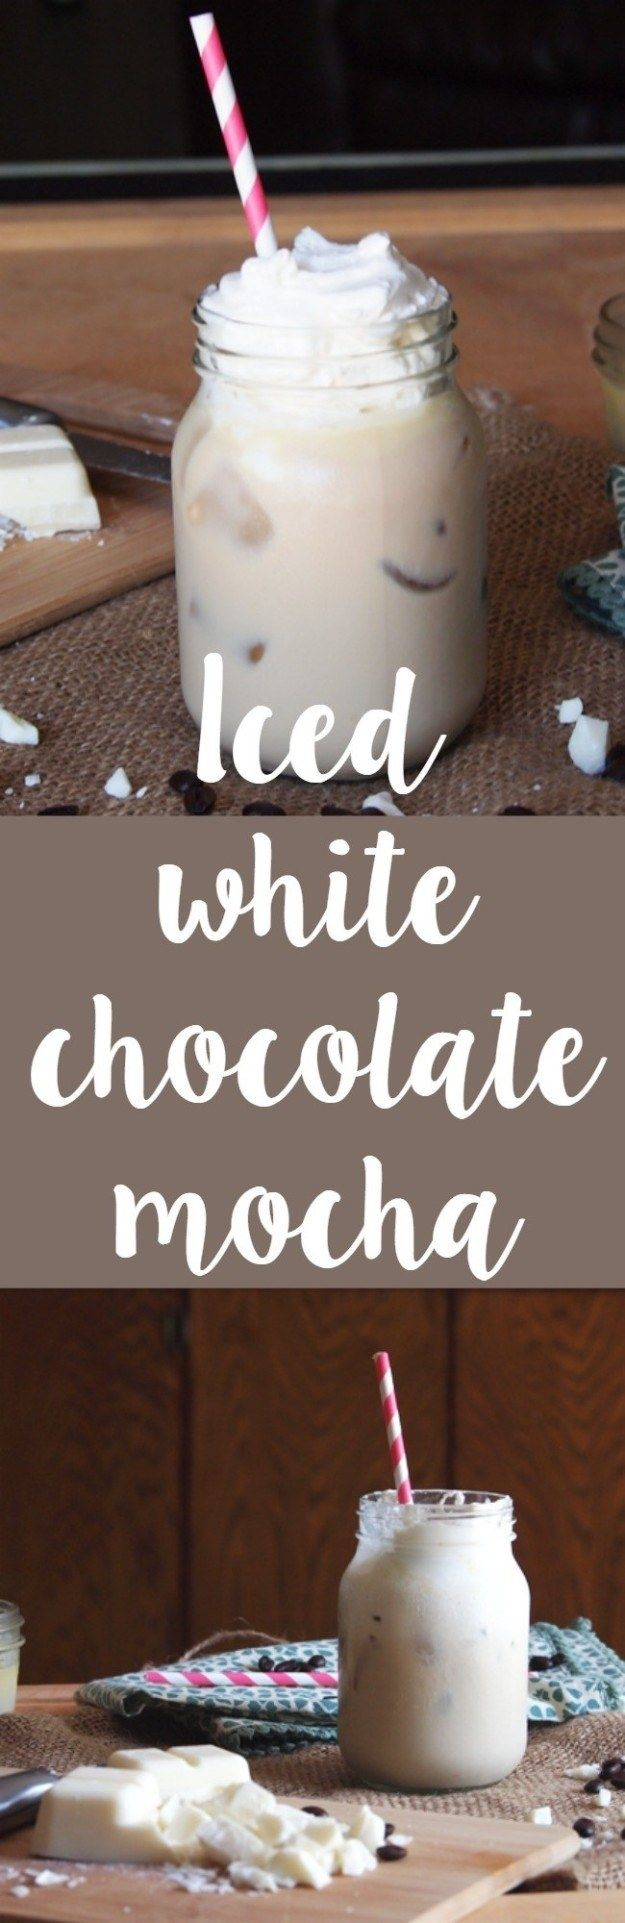 Iced White Chocolate Mocha | 29 DIY Starbucks Recipes That Will Save You Tons Of Cash  its lit yall